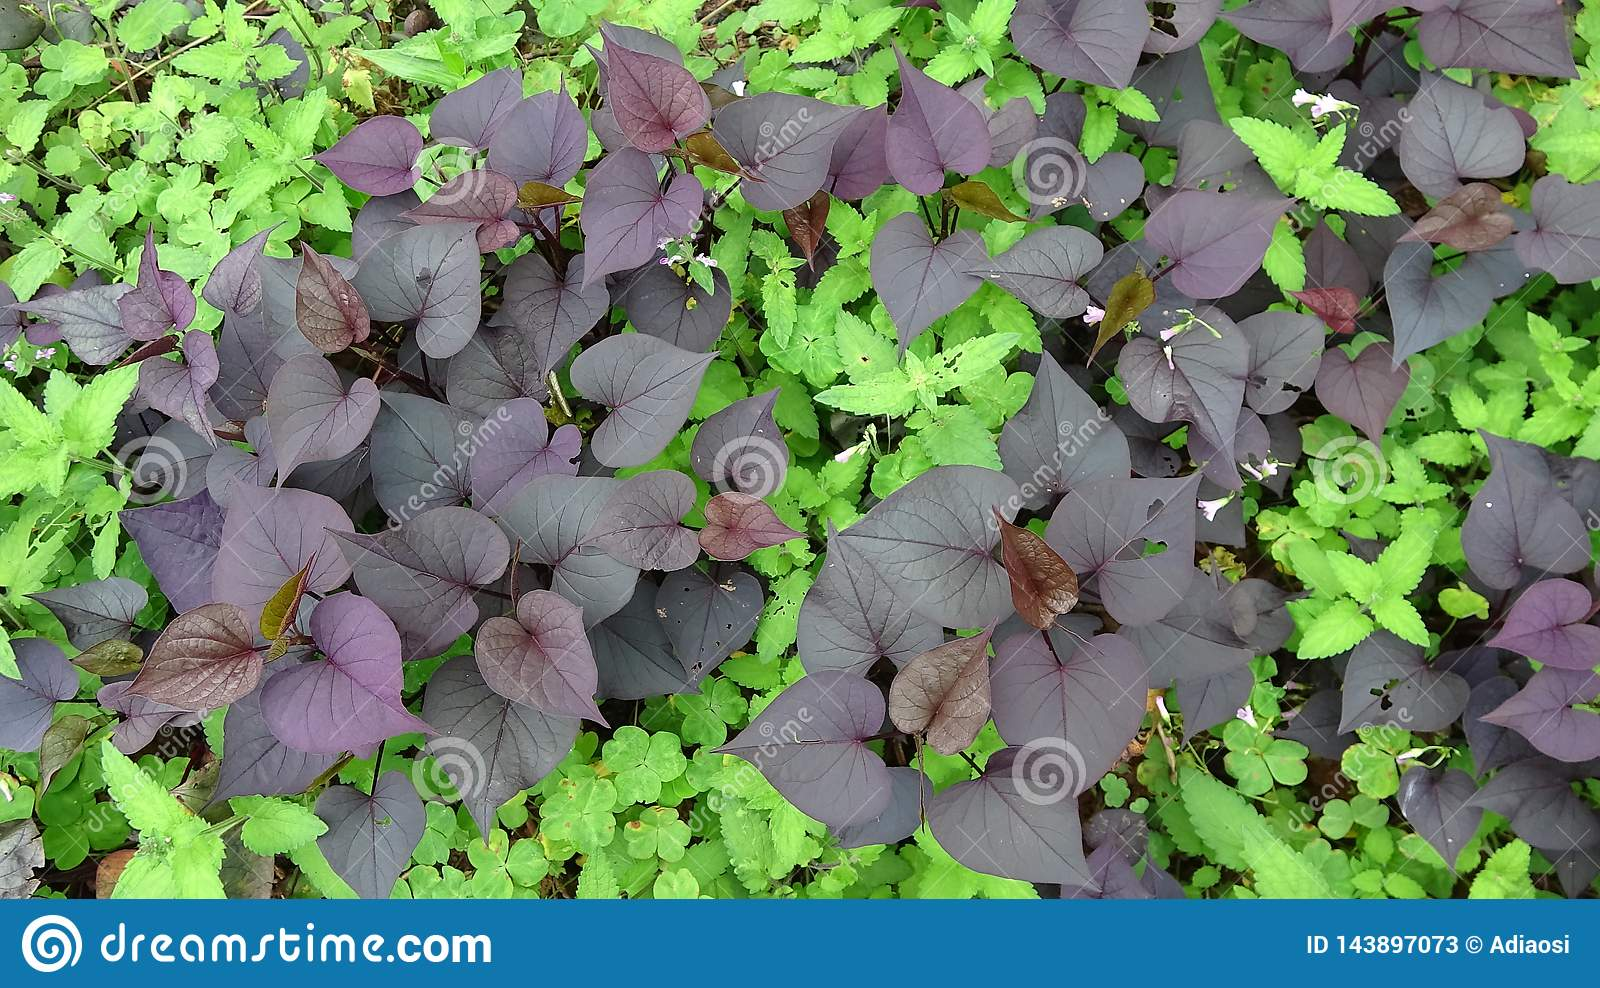 Purple sweet potato leaves grow in the grass